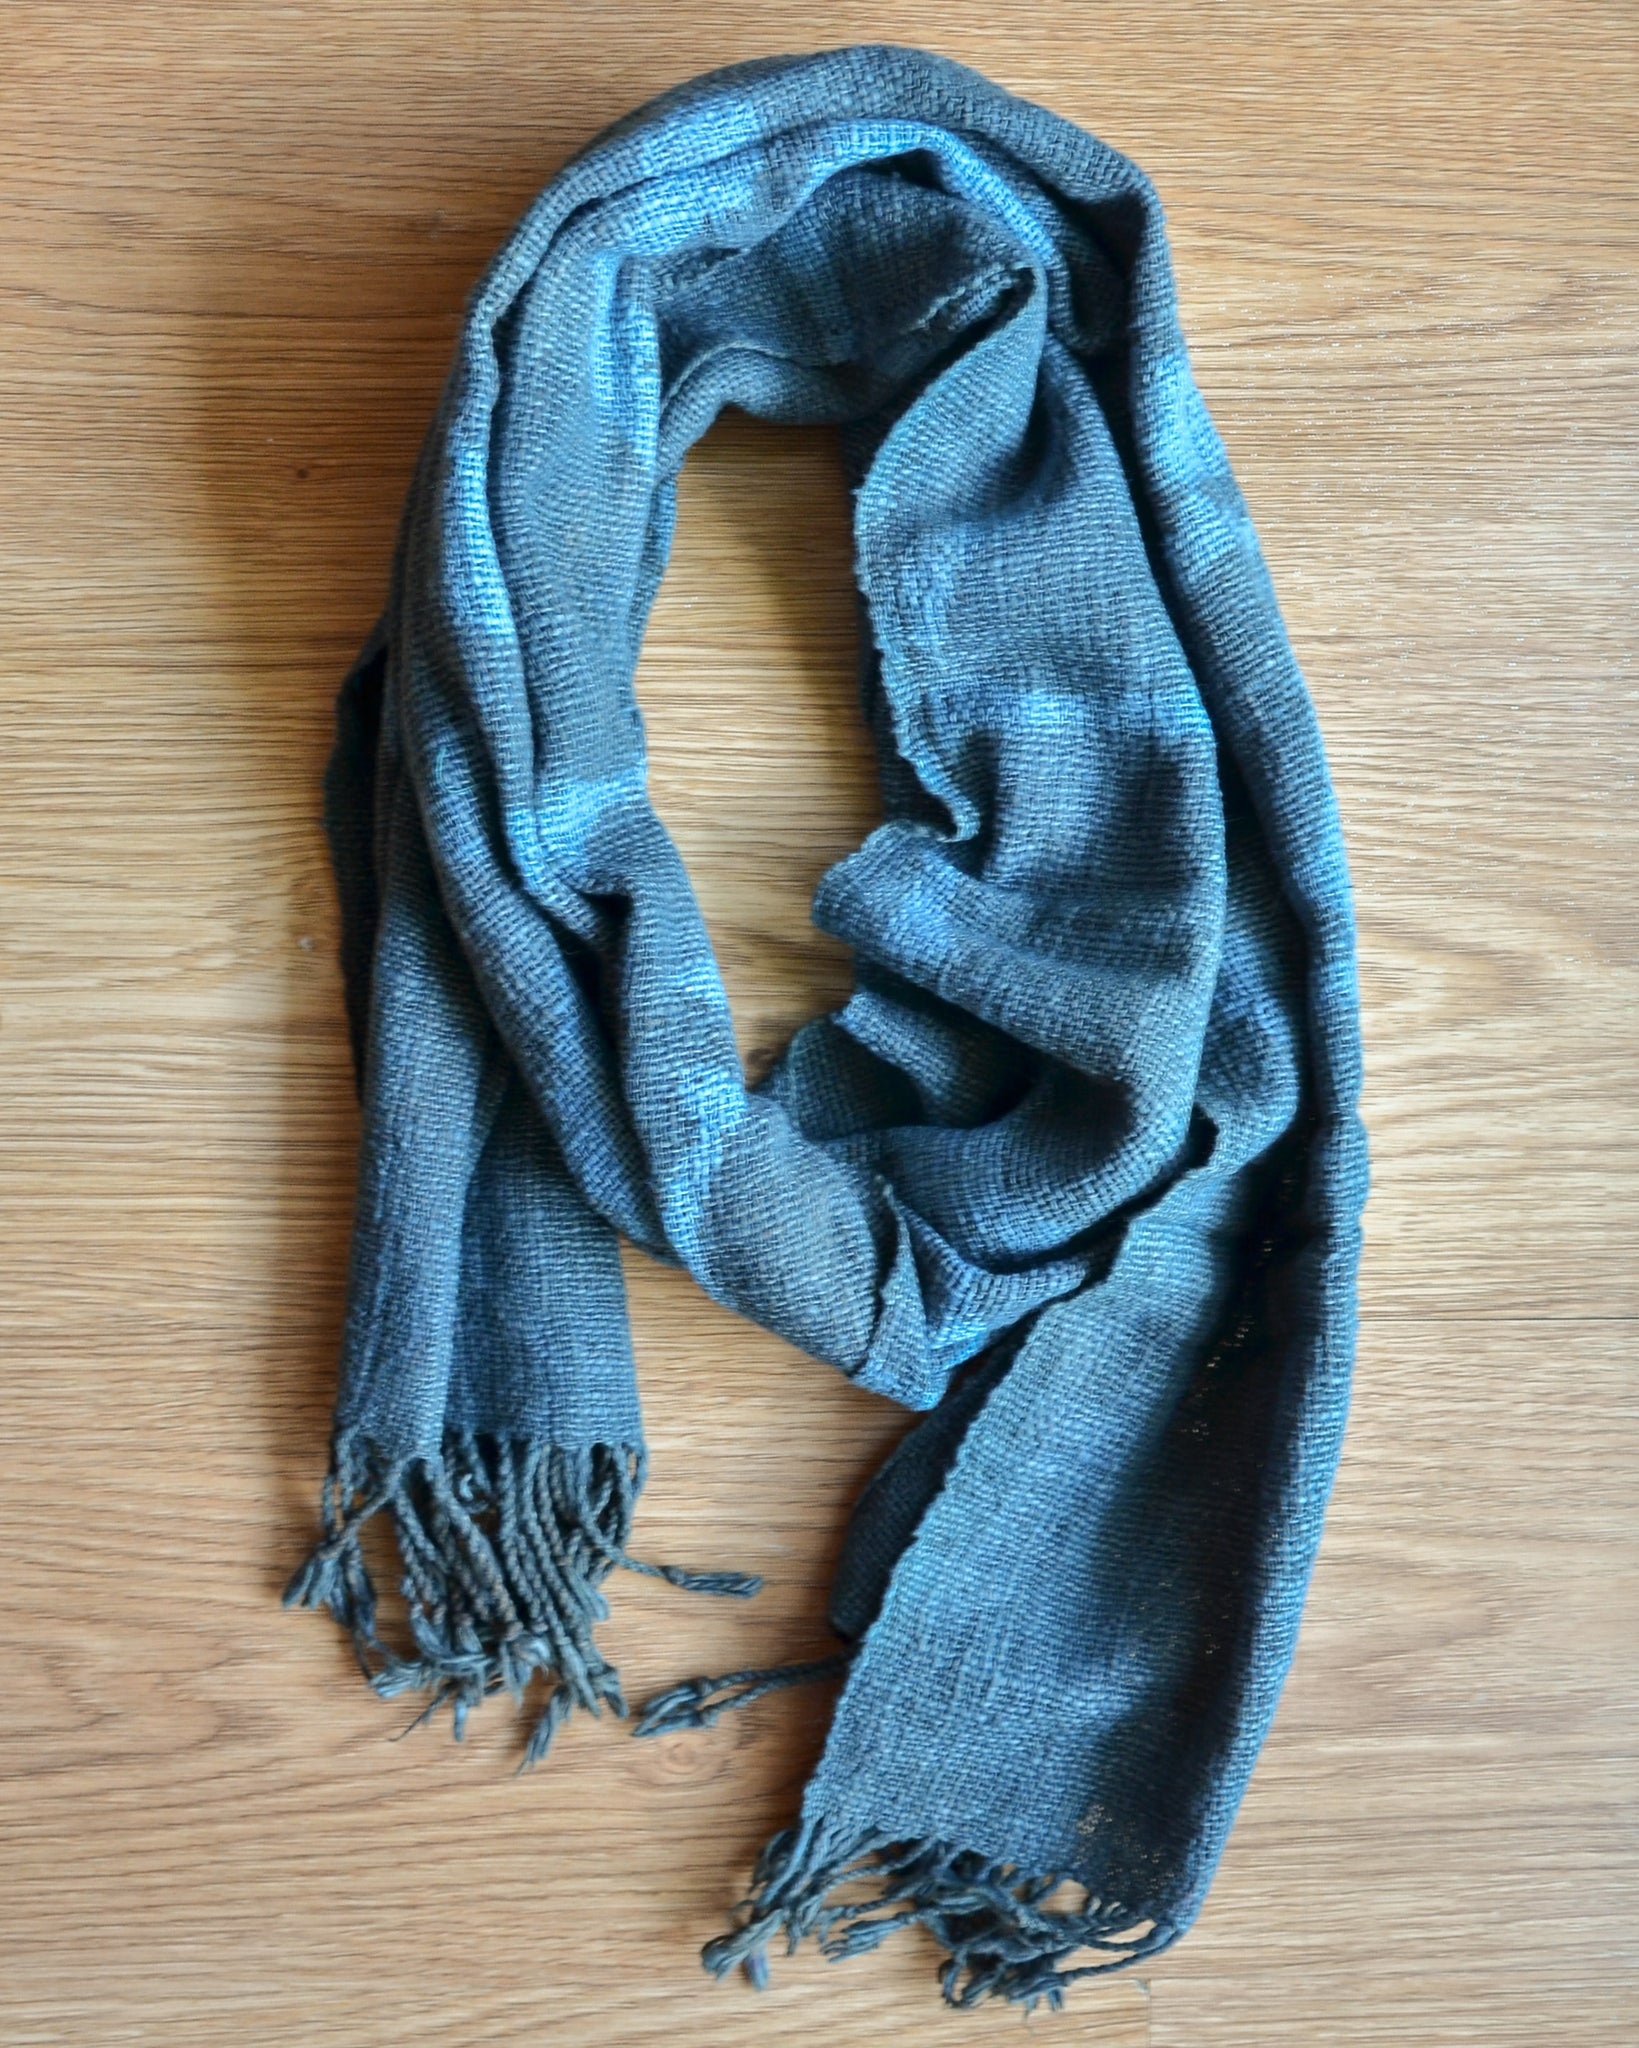 Clamp Dyed Handwoven Scarf in Blue Grey